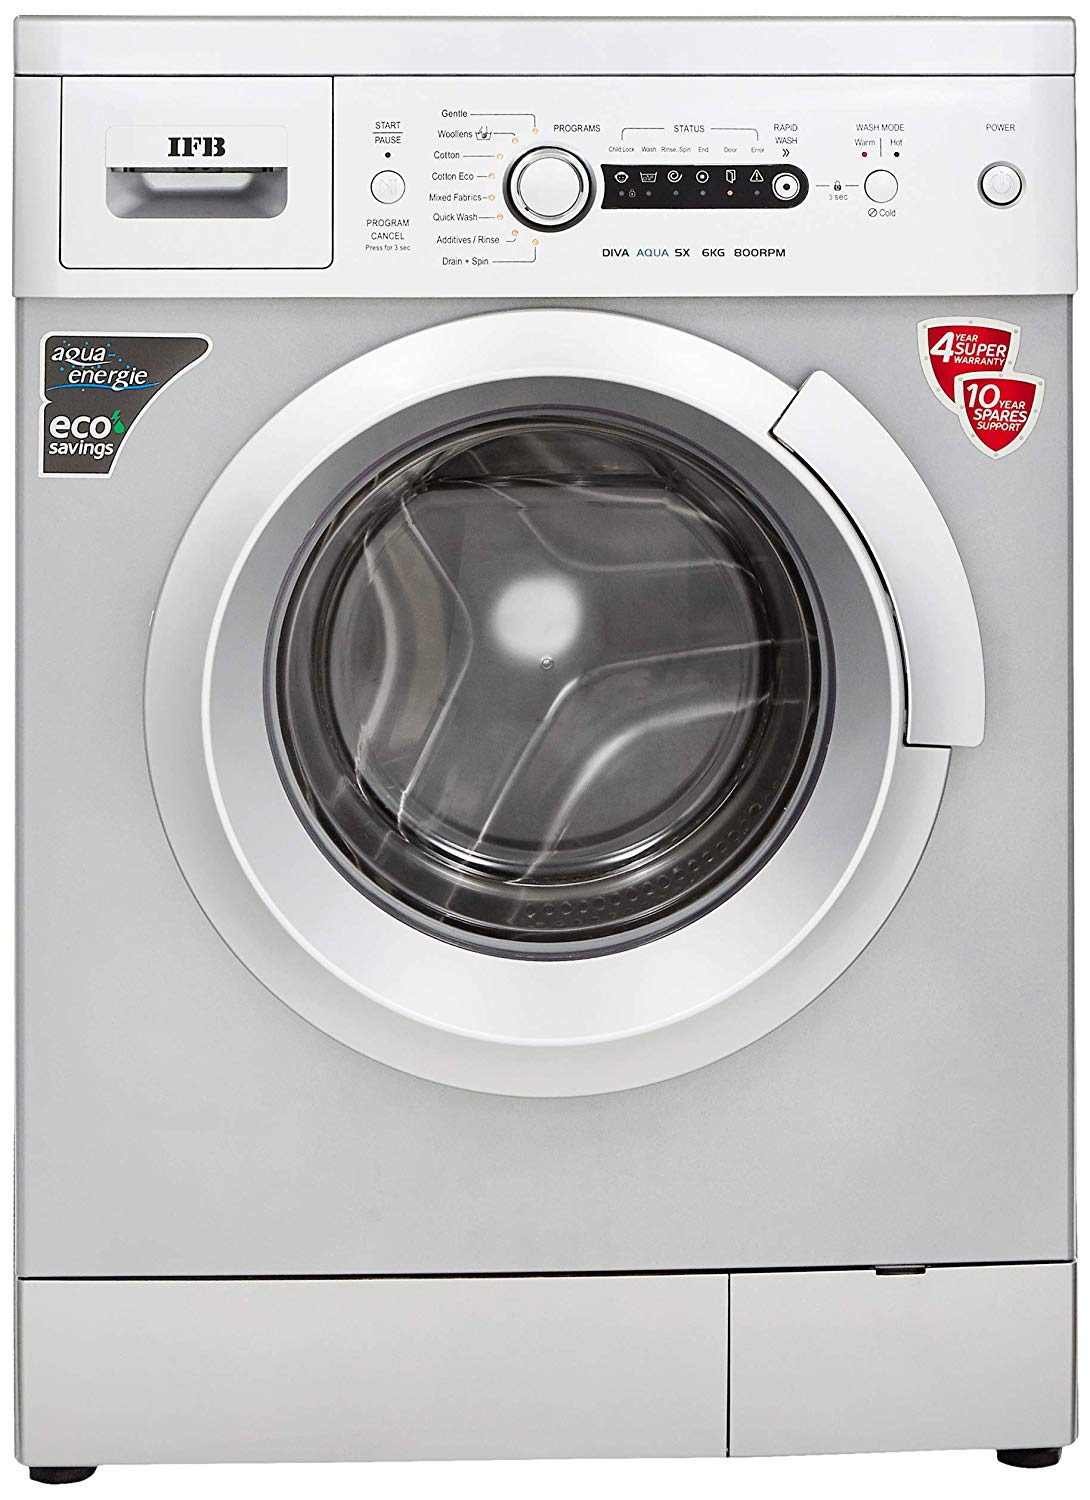 IFB Fully-Automatic Front Loading Washing Machine